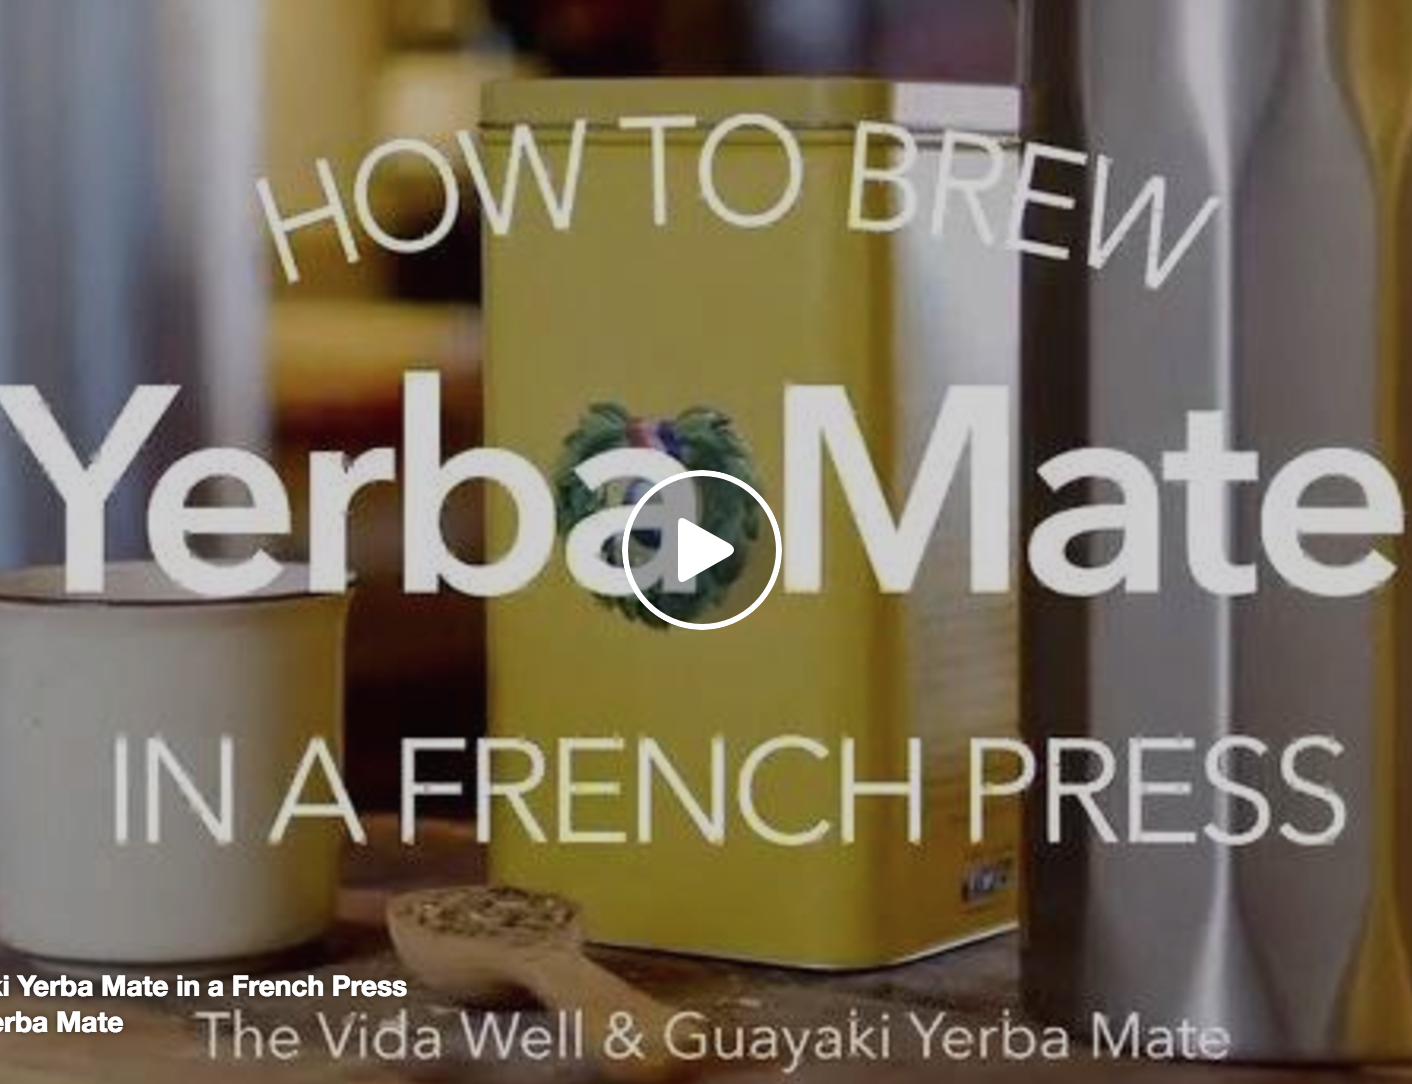 How to brew Yerba Mate in a French Press